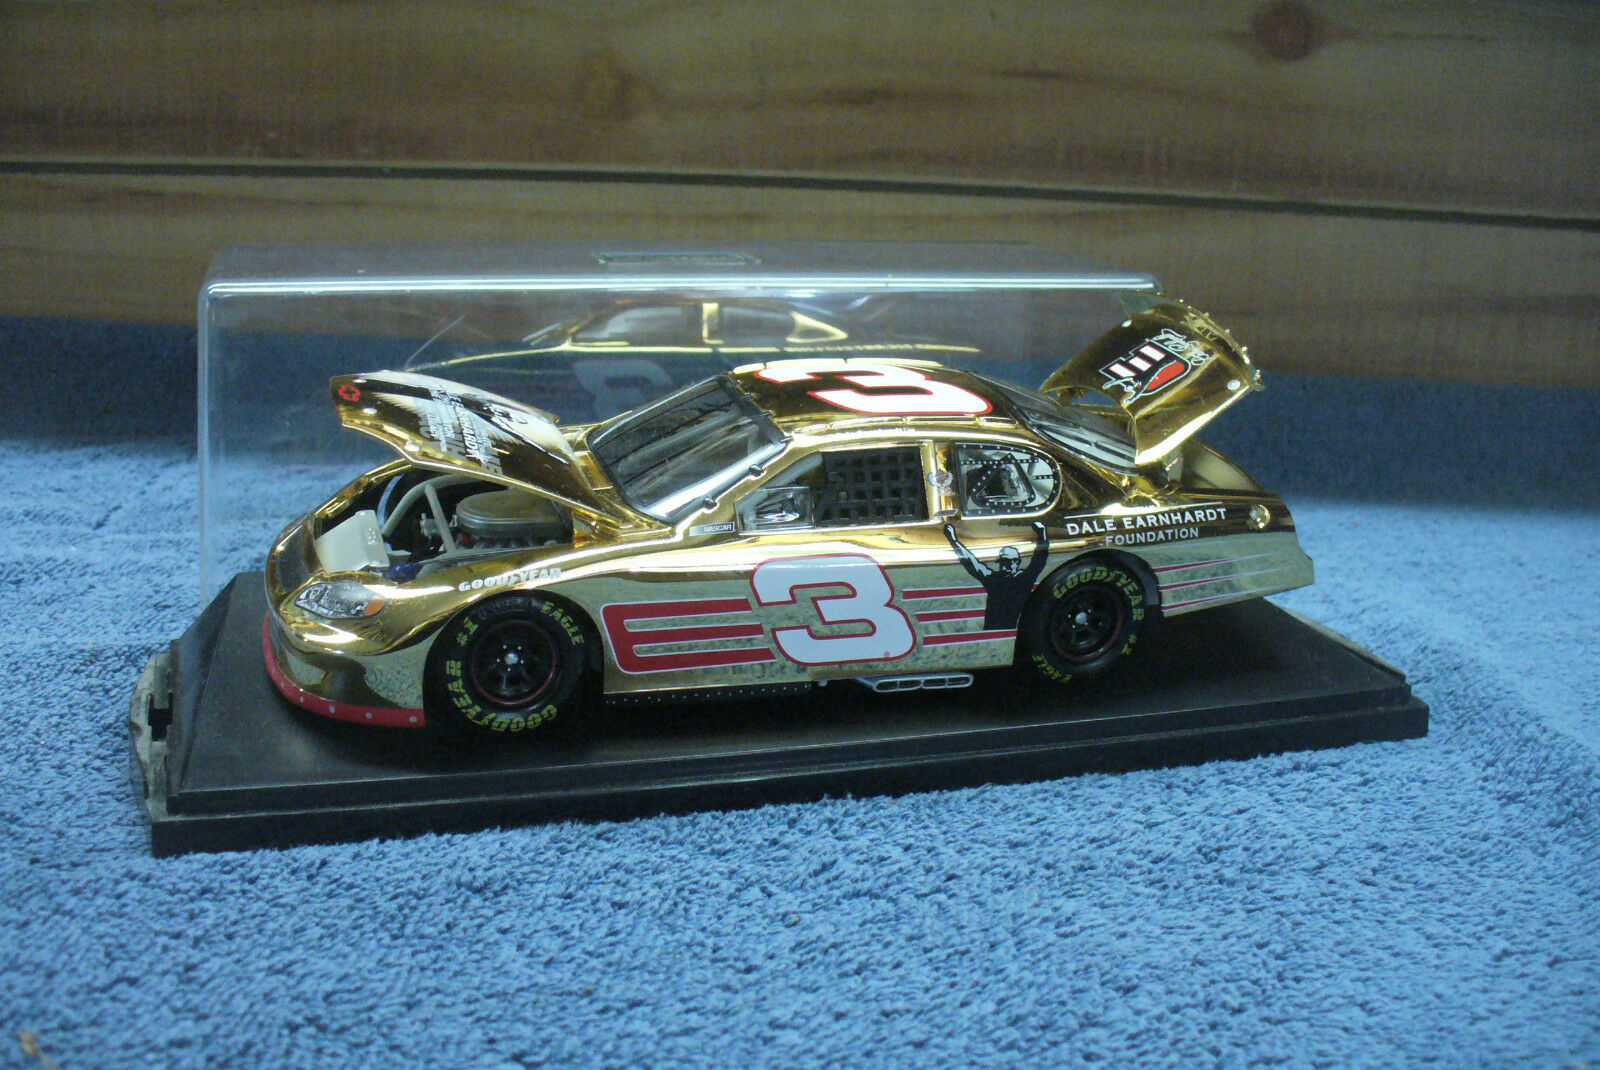 Dale earnhardt action foundation 1 24 24 24 scale 24k gold limited 3333 24d13f